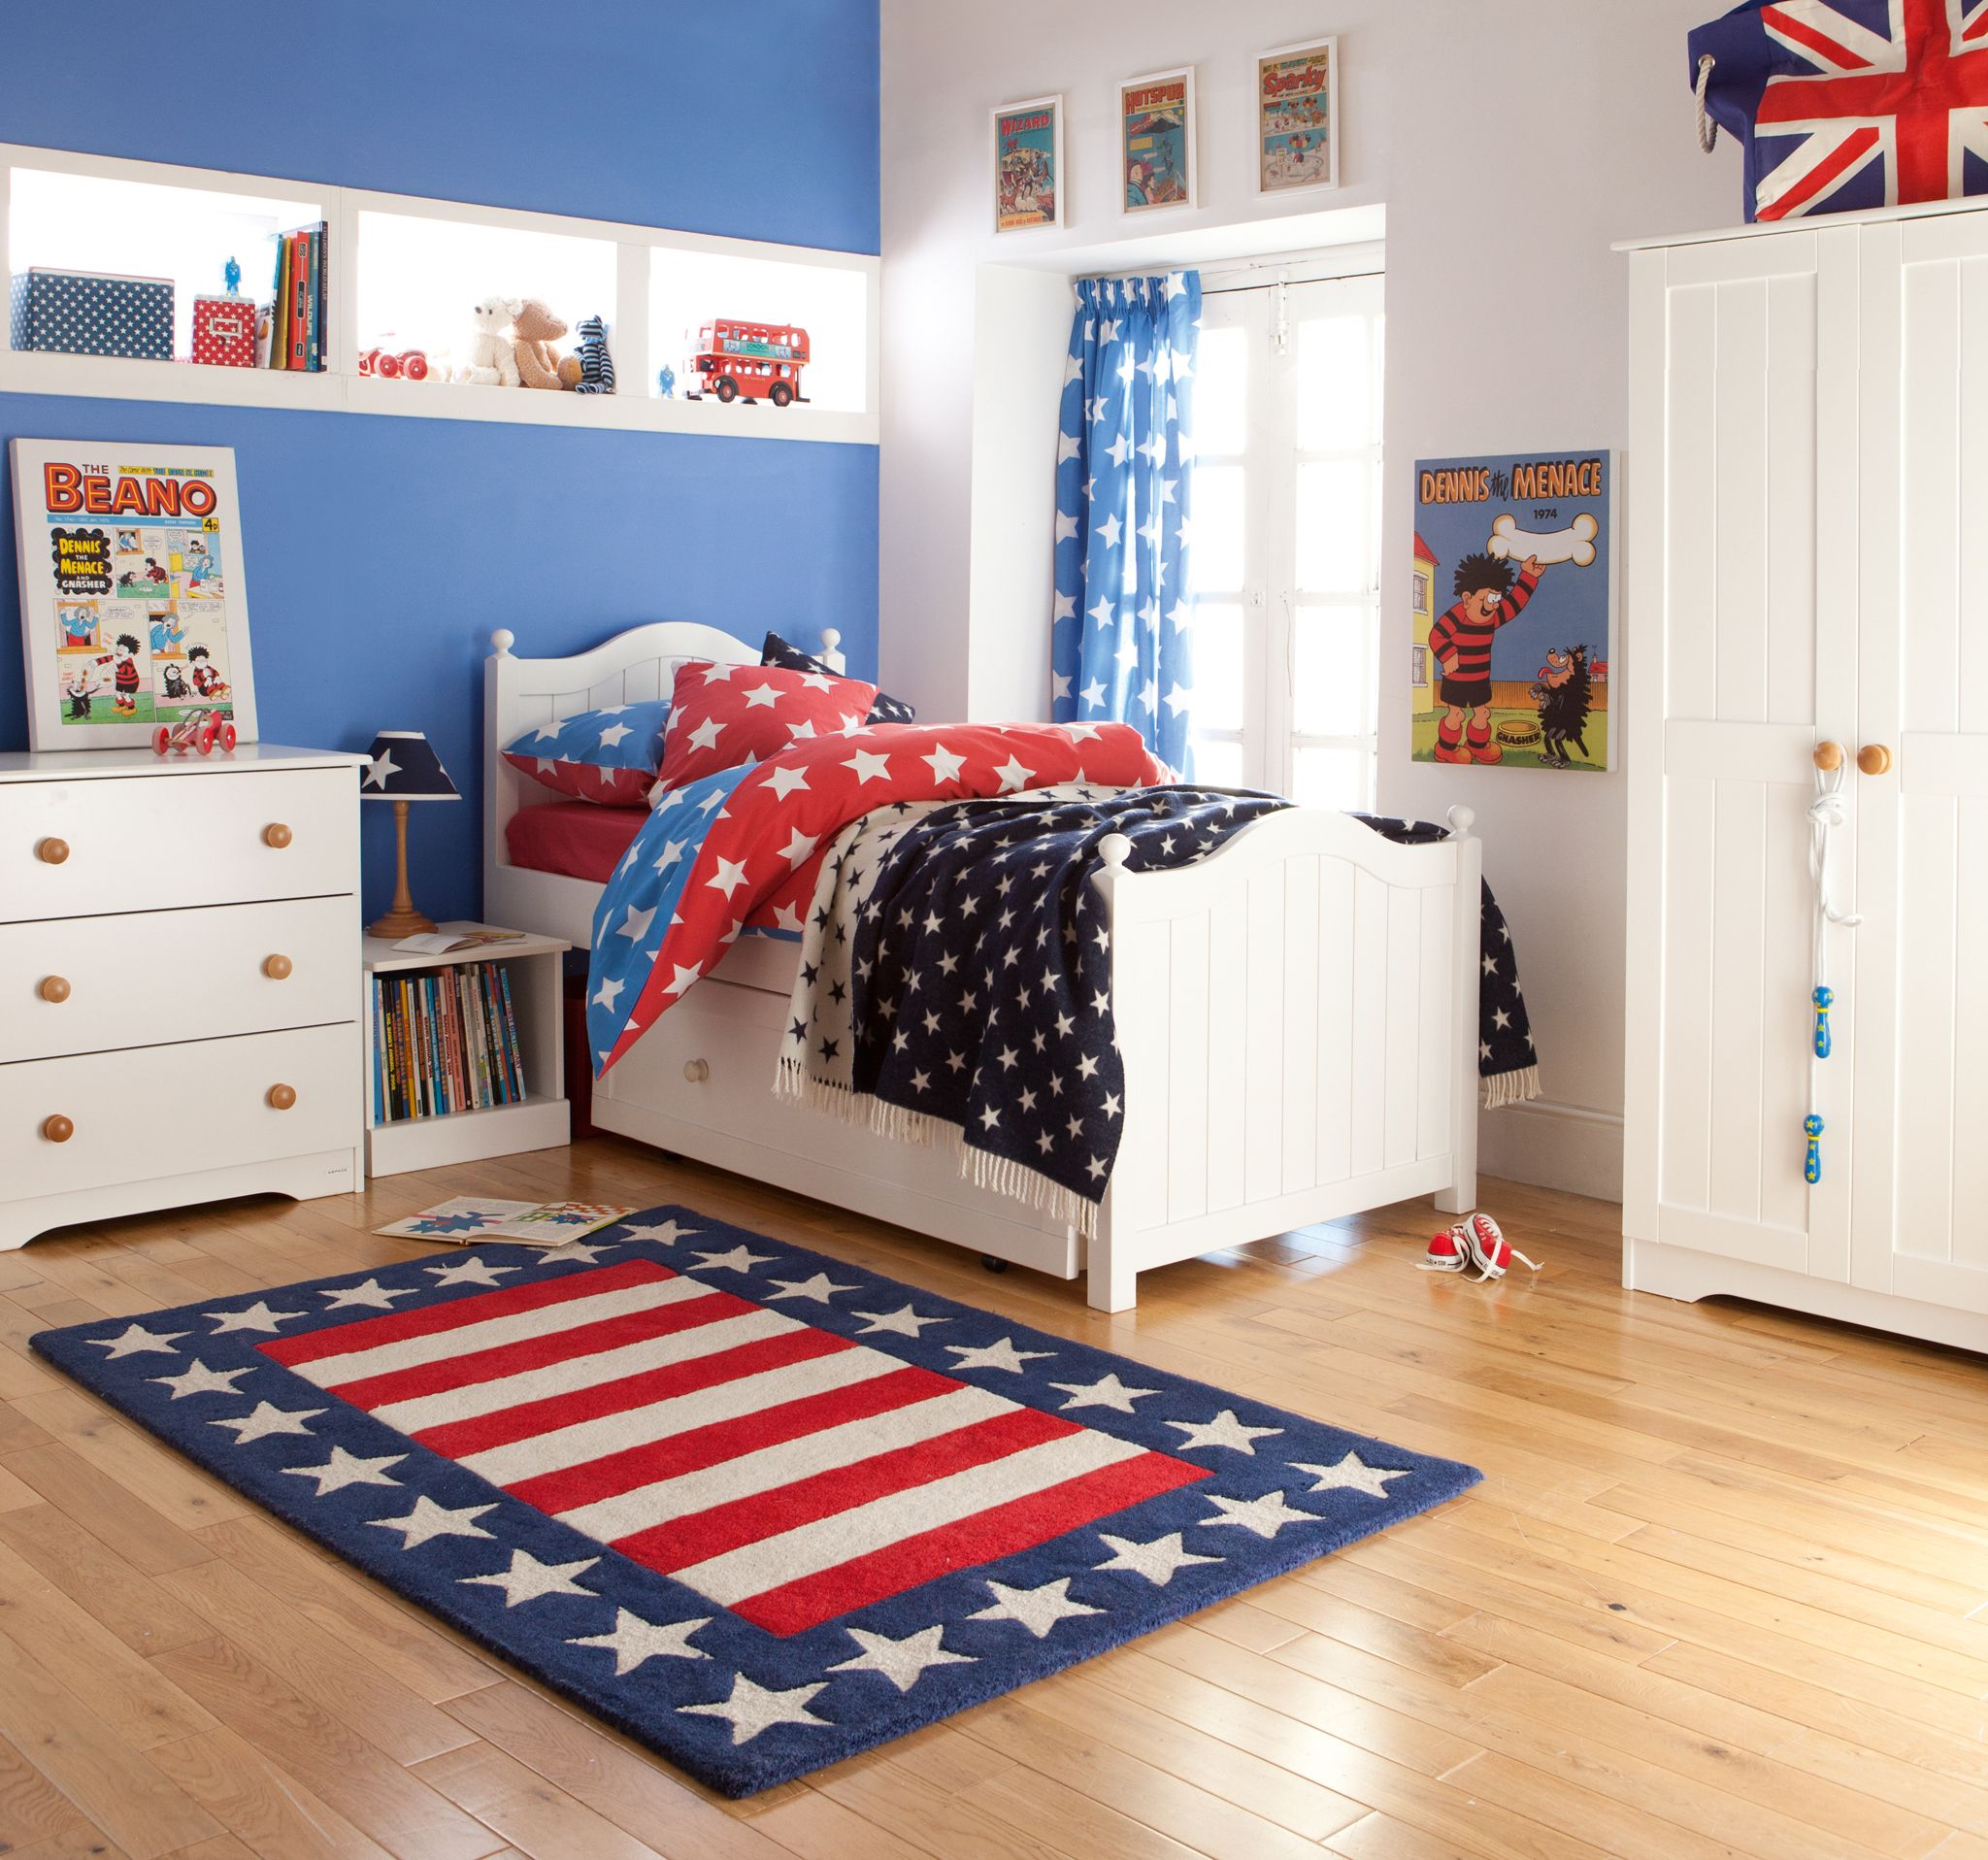 Fantastic Boys Bedroom Looks Like A Brilliant Place To Relax In Plus The Bed Has Storage Und